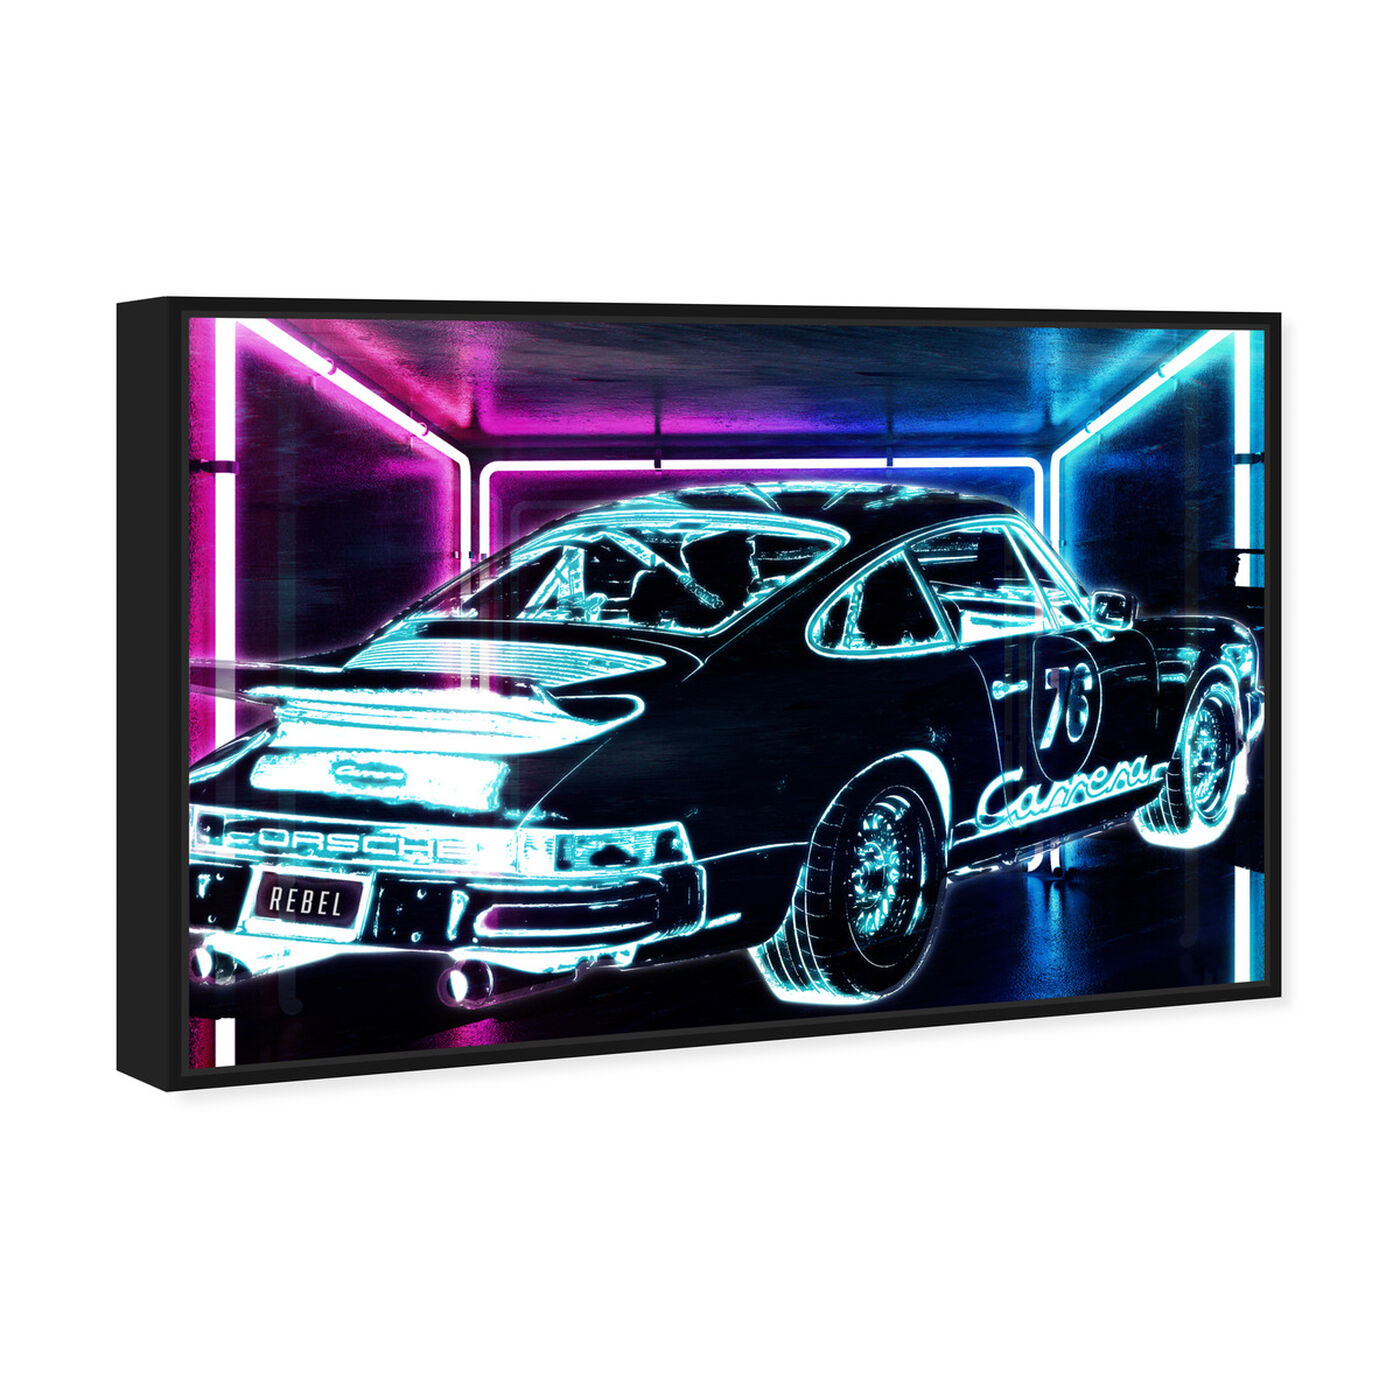 Angled view of CyberCar art.